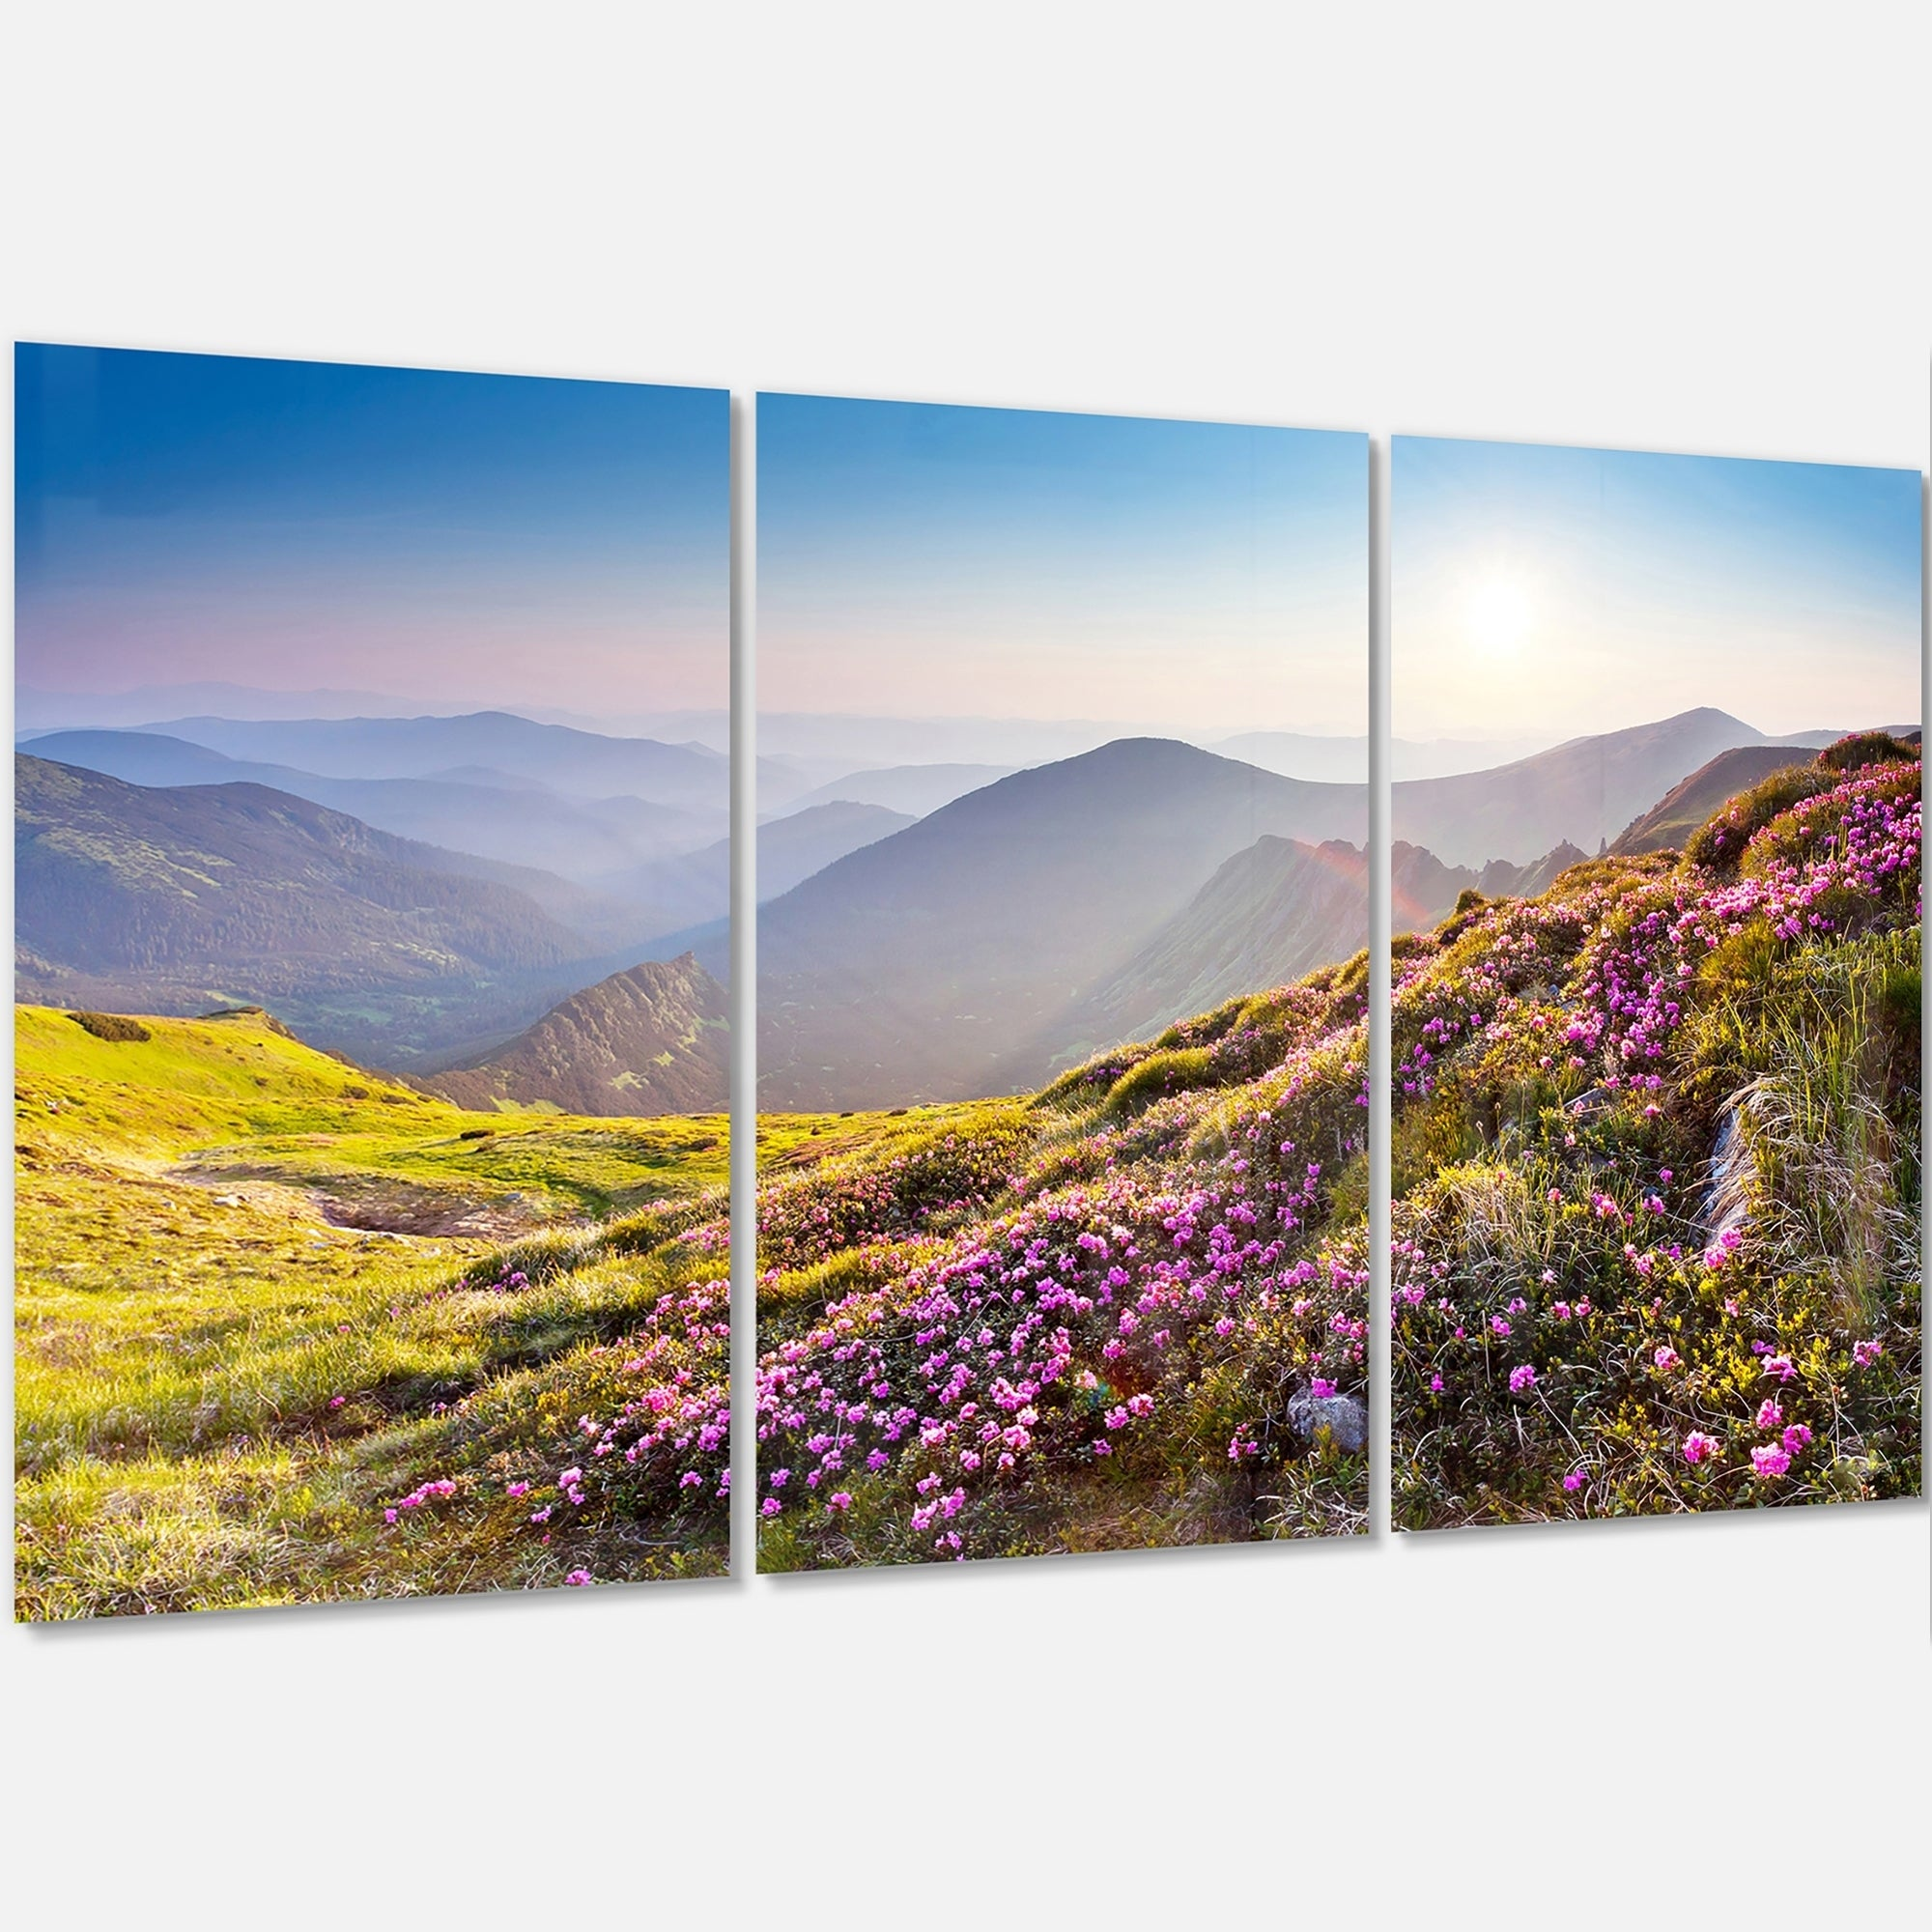 Designart Magic Pink Flowers On Mountains Landscape Photo Glossy Metal Wall Art Overstock 12697244